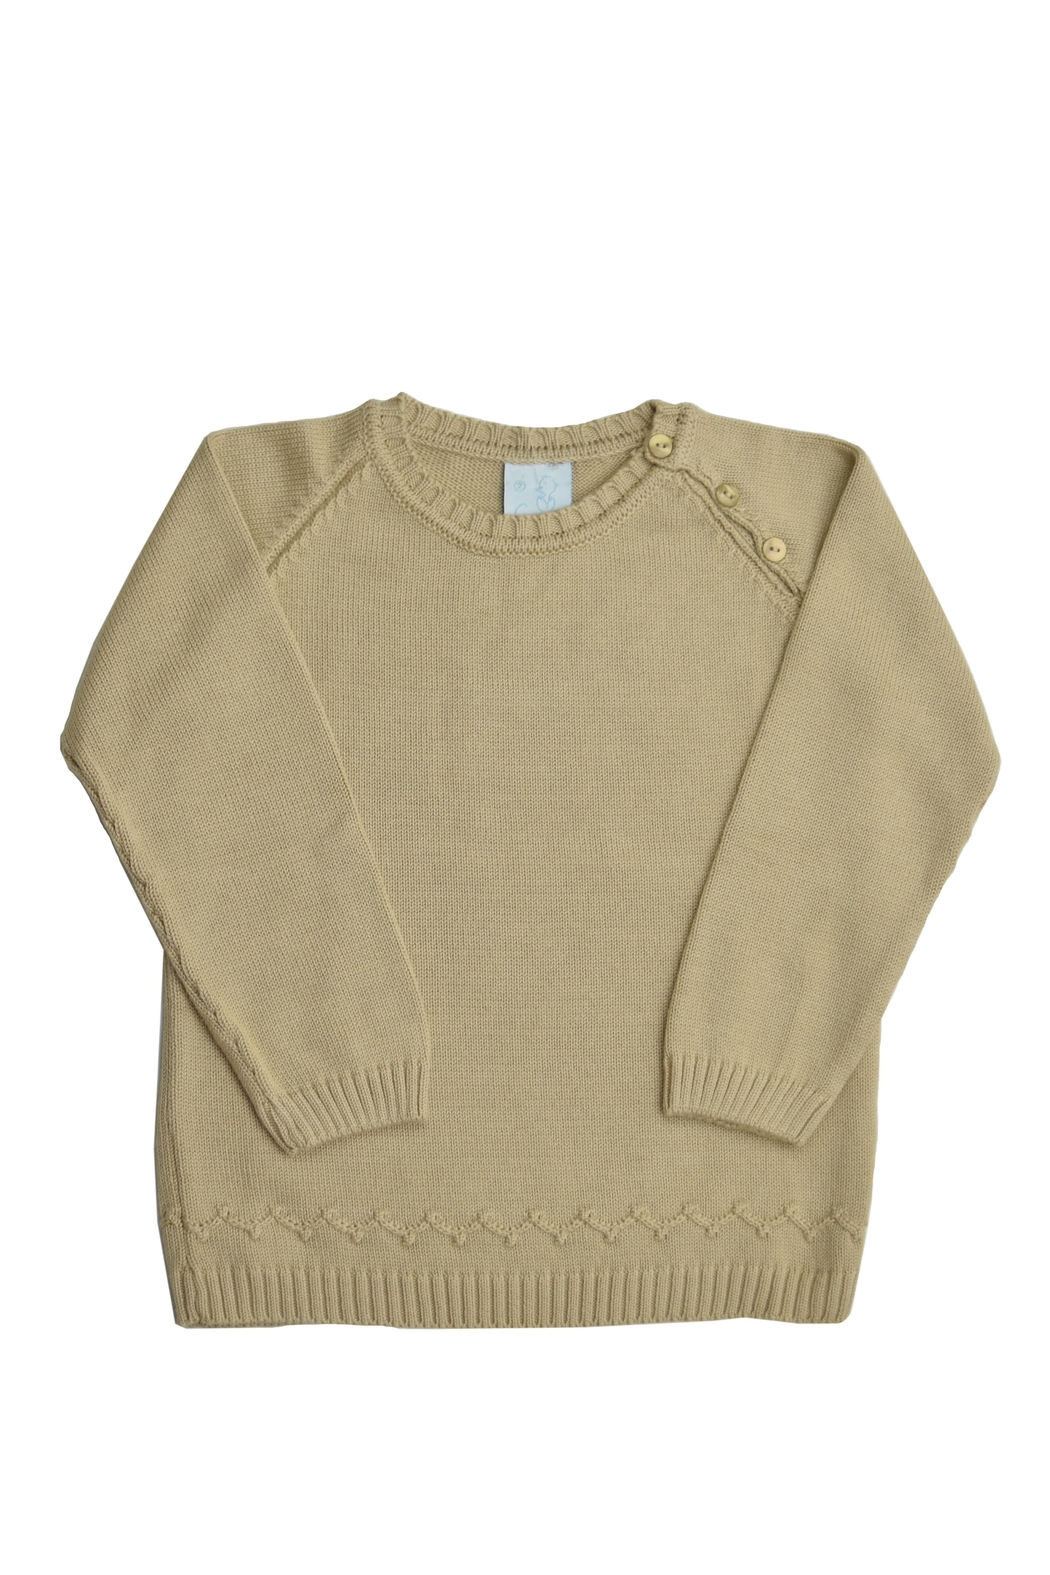 Granlei 1980 Beige Knit Sweater - Front Cropped Image